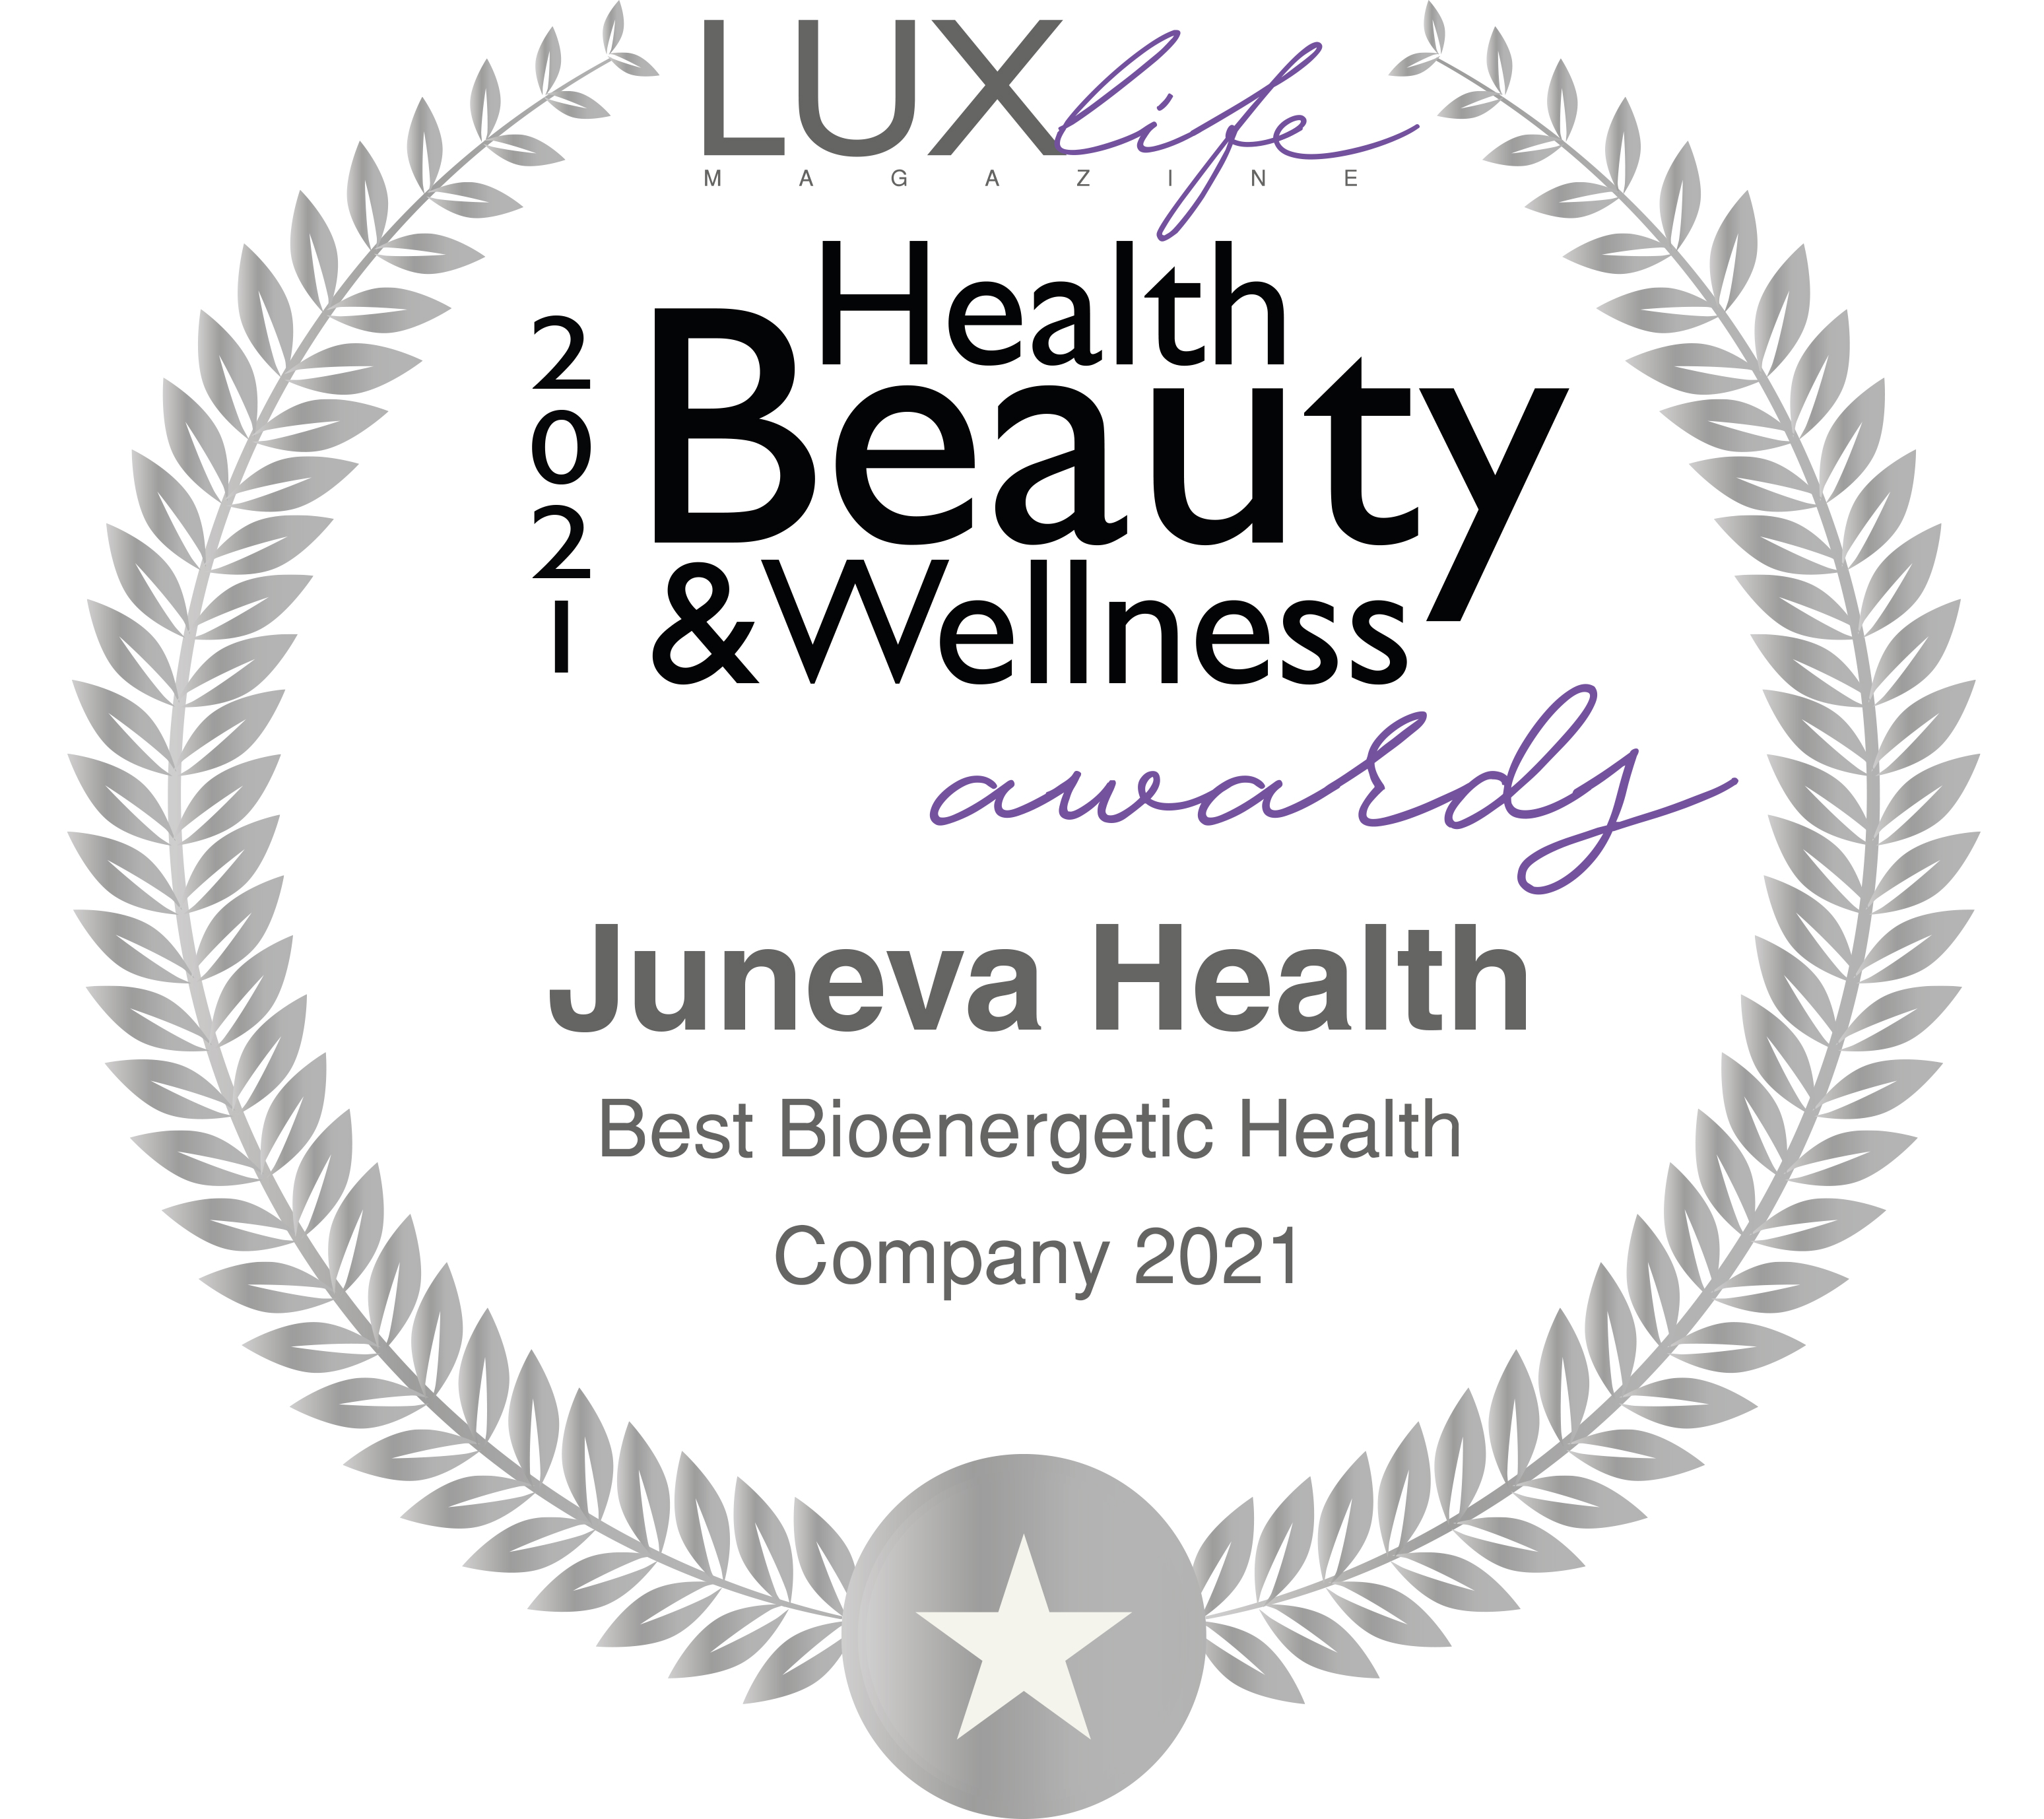 Juneva receives a 2021 healthcare and pharmaceutical award from LUXlife magazine